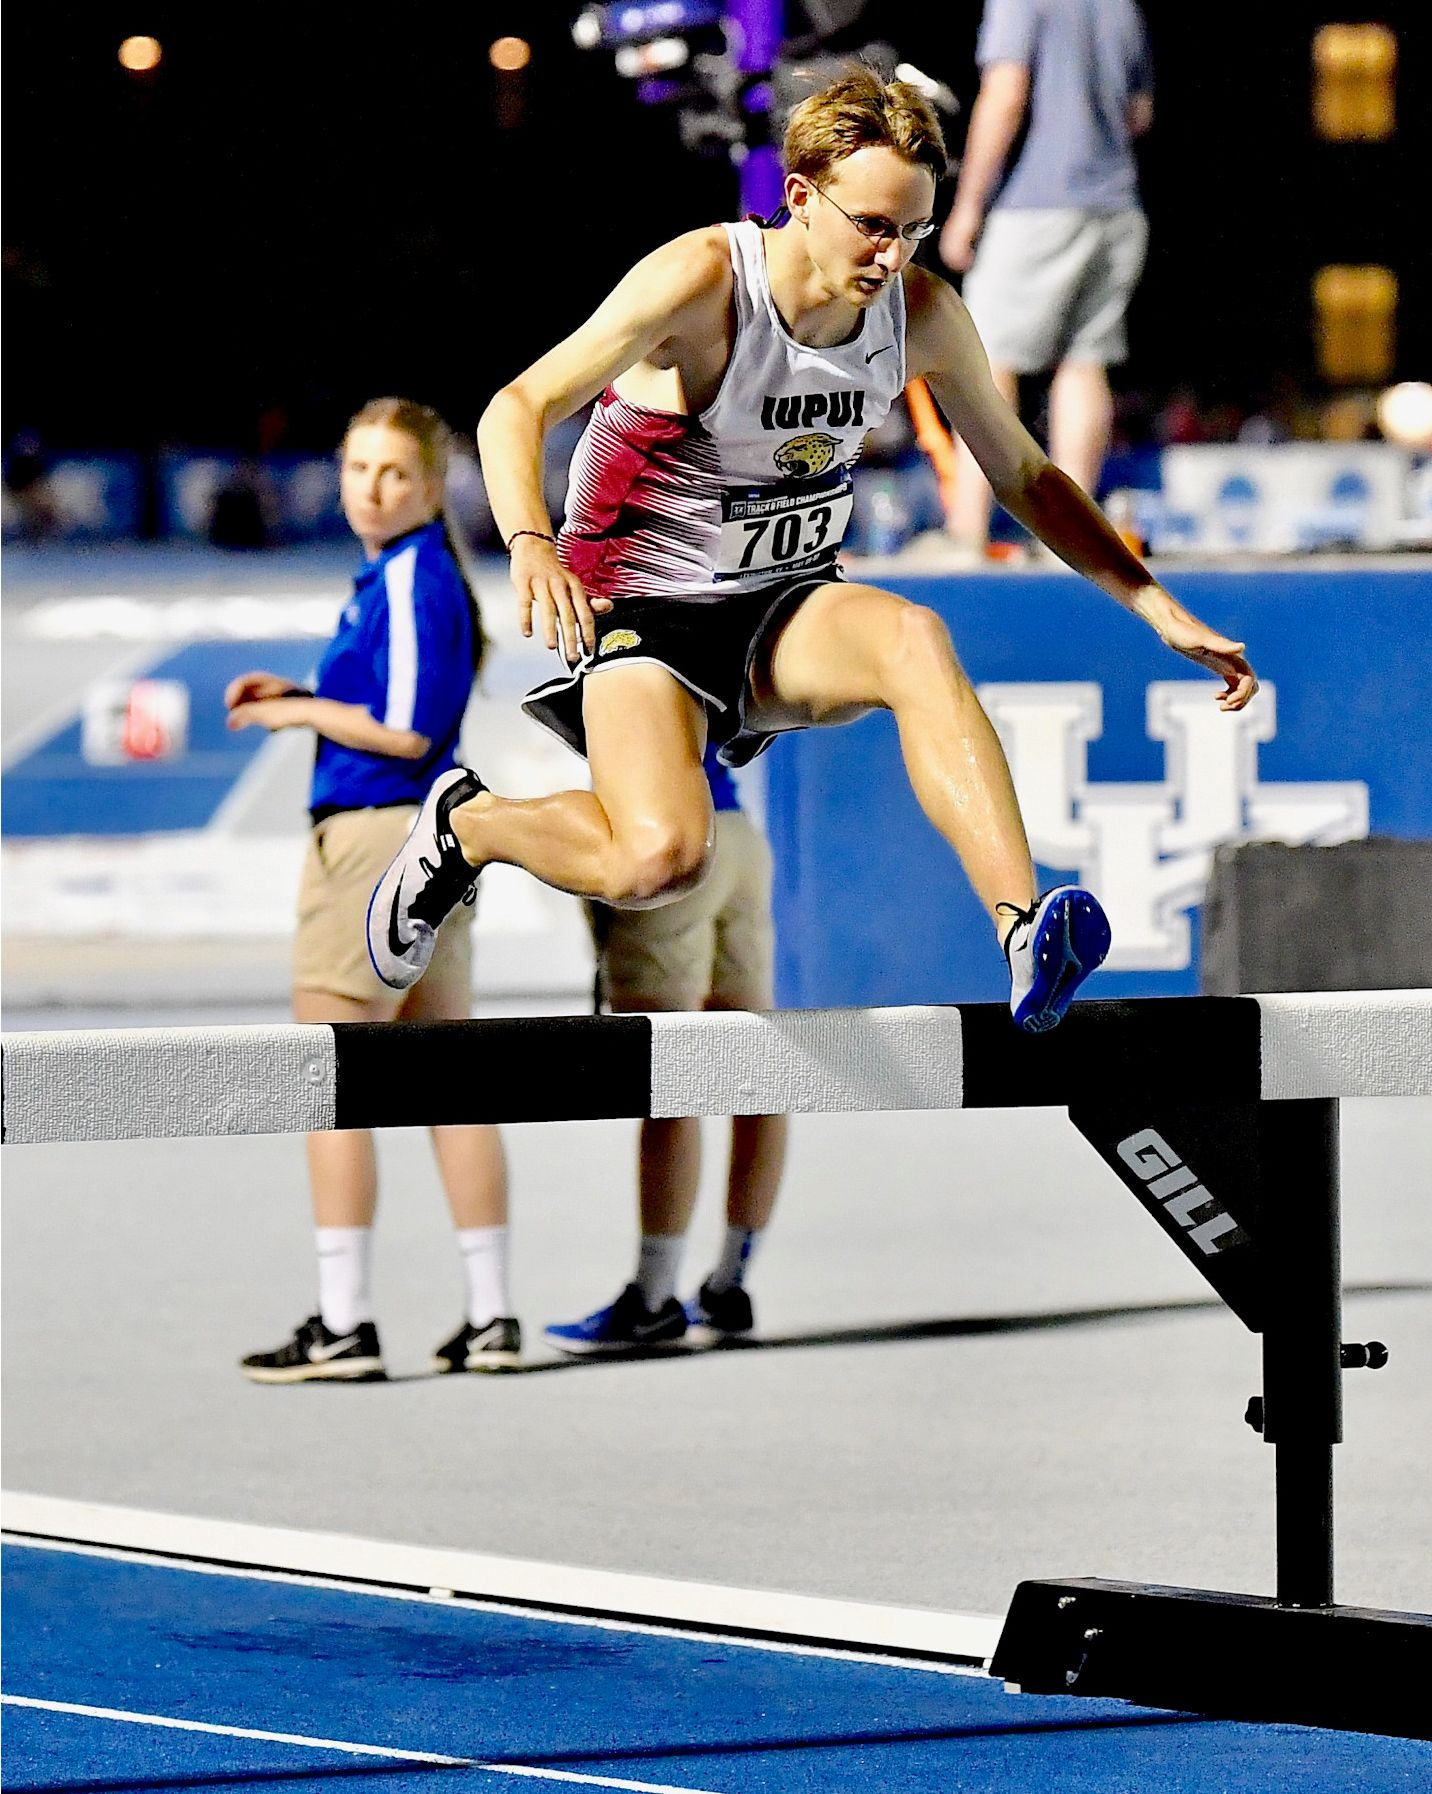 IUPUI runner Robert Murphy jumps over a barrier in the steeplechase.